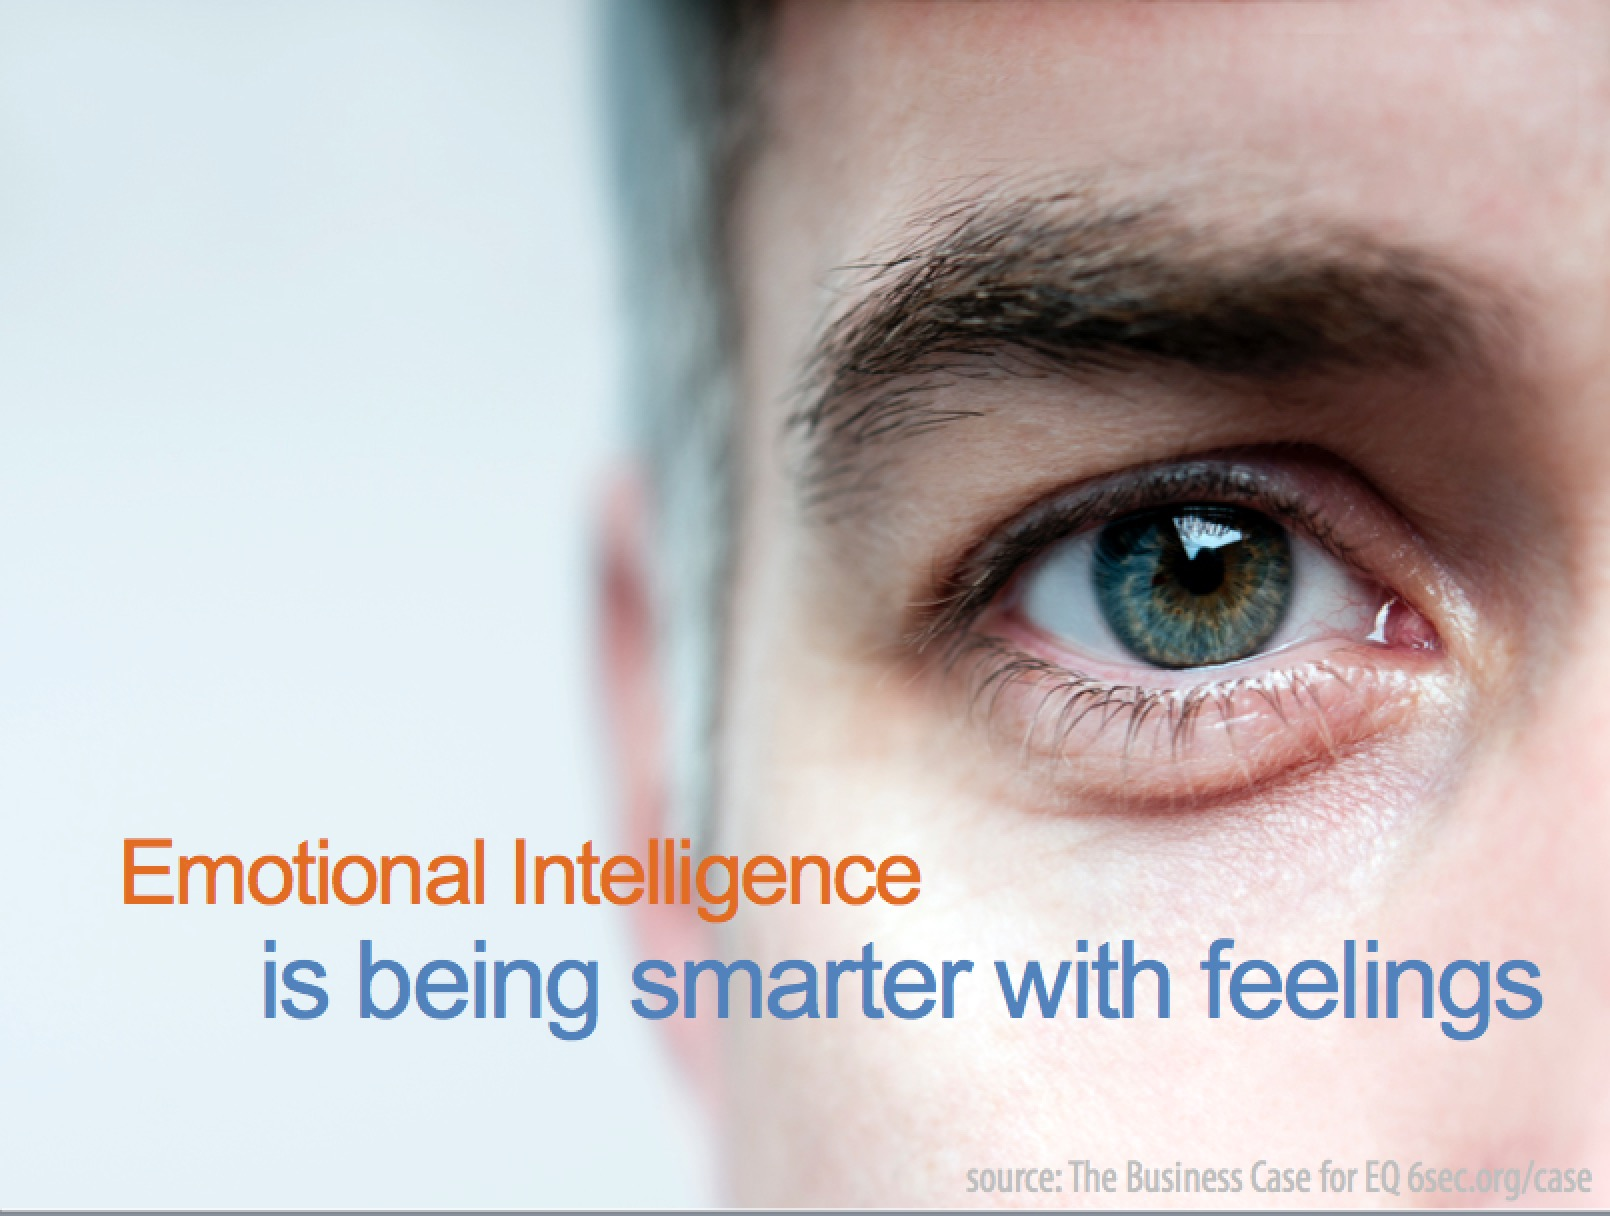 Are You Ready To Put Emotional Intelligence To Work in Your Organization?